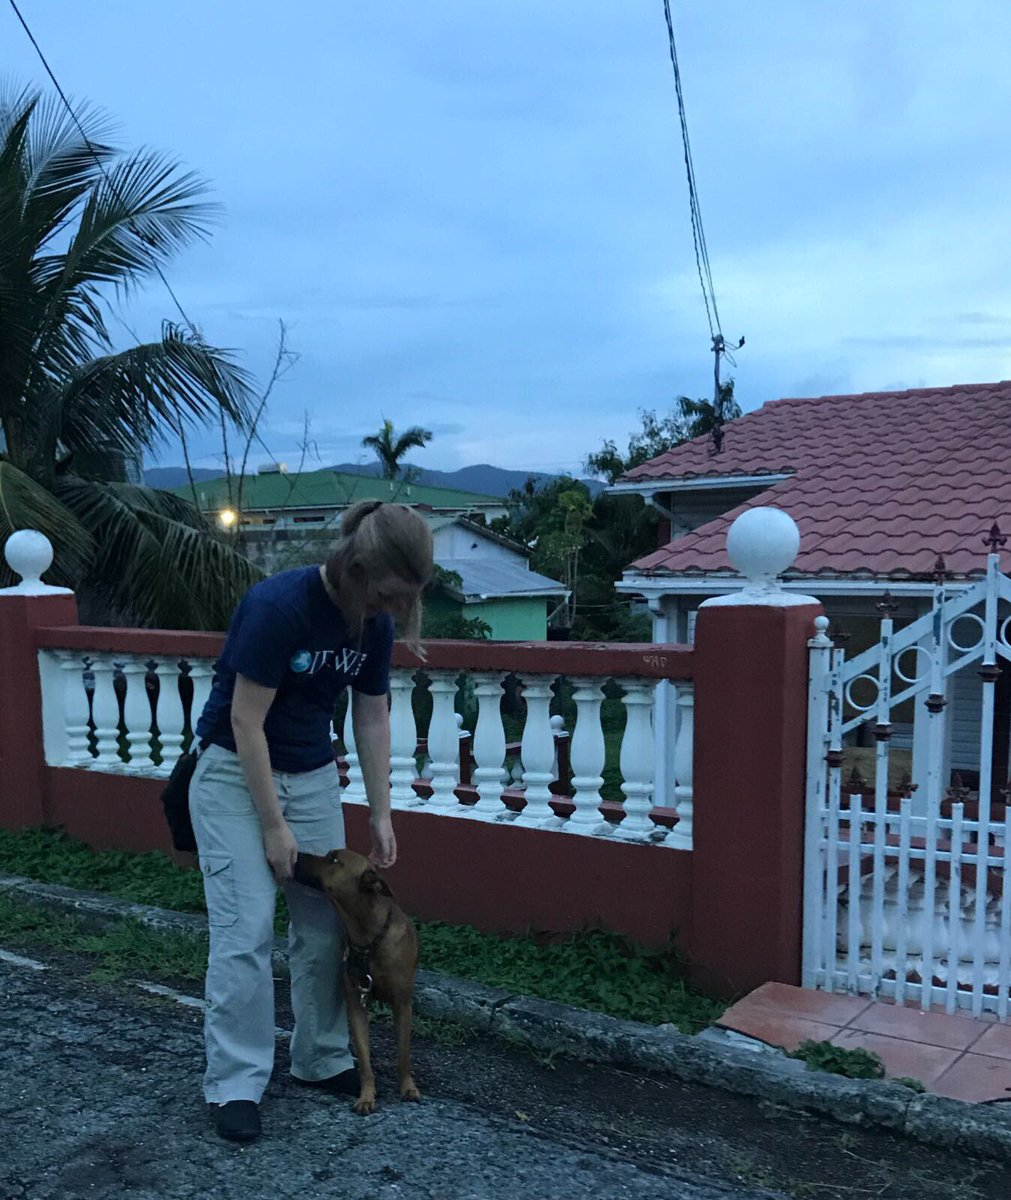 RT @action4ifaw: First day on the island - meeting the community of Antigua. https://t.co/Pc79UclqgC